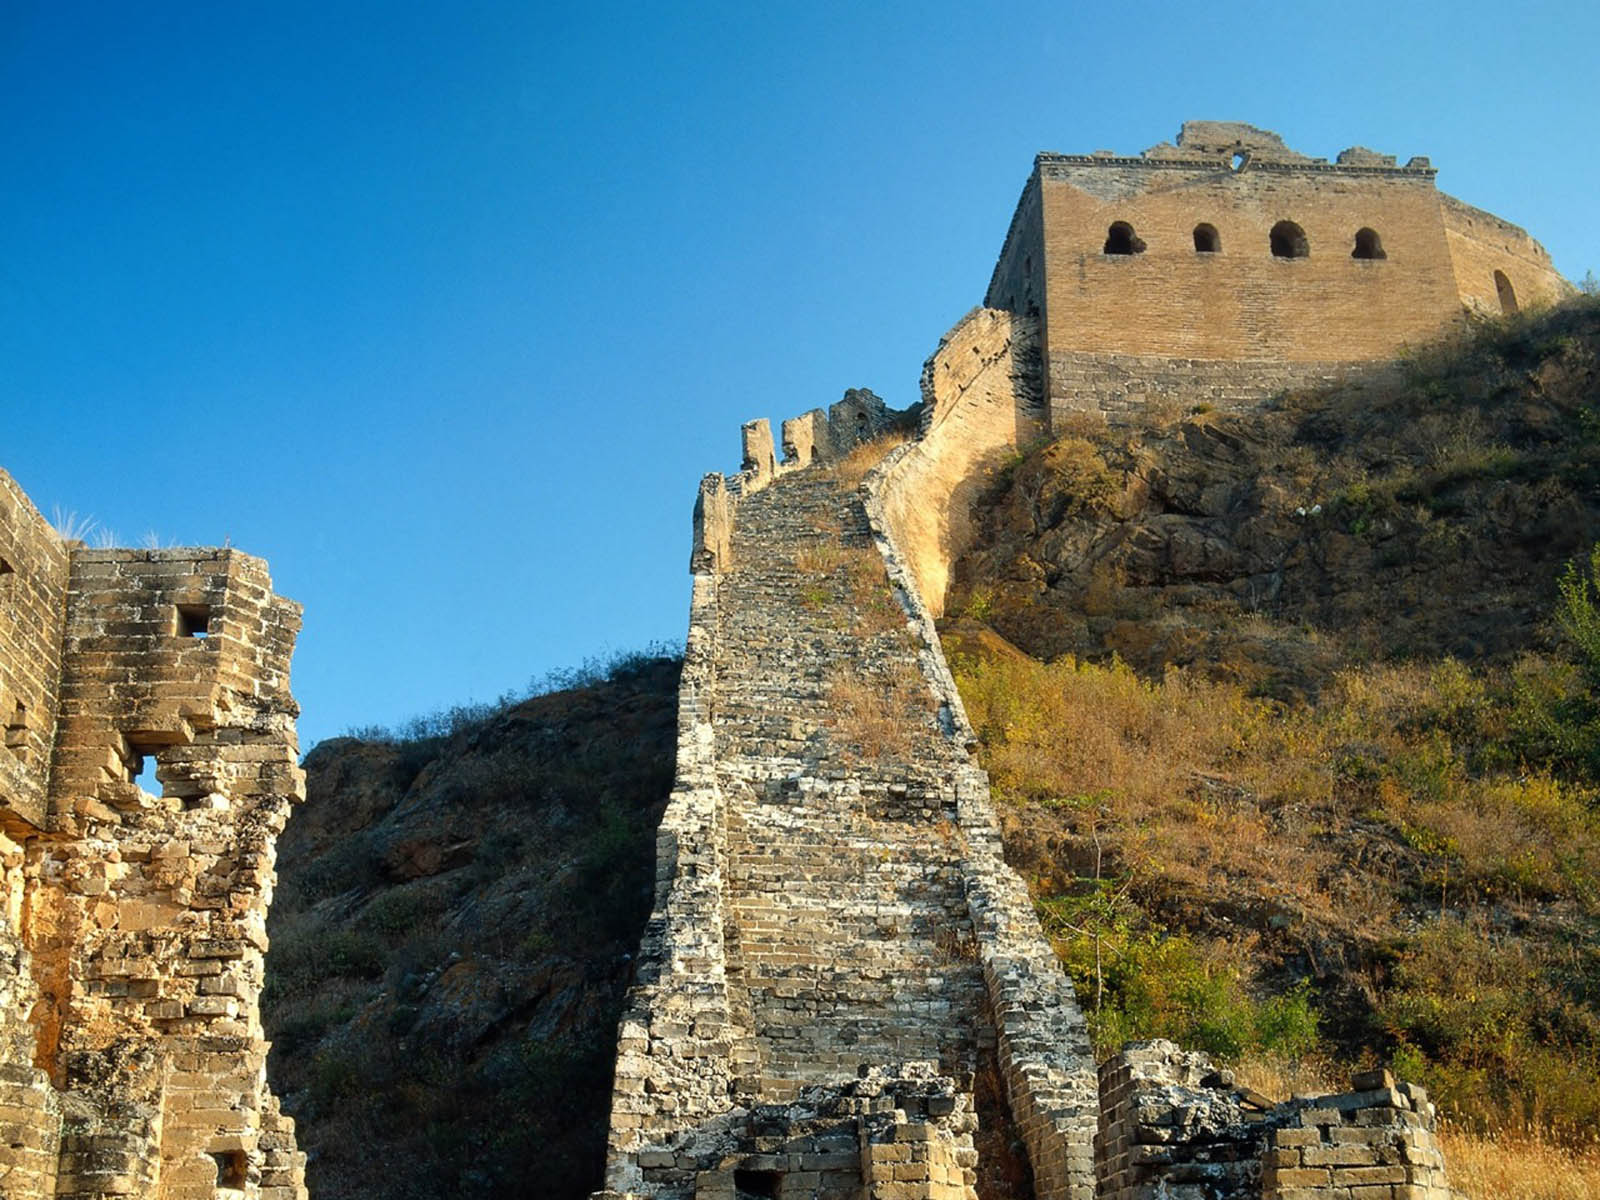 Free Wallpapers Of Cars And Bikes For Desktop Wallpapers Great Wall Of China Wallpapers